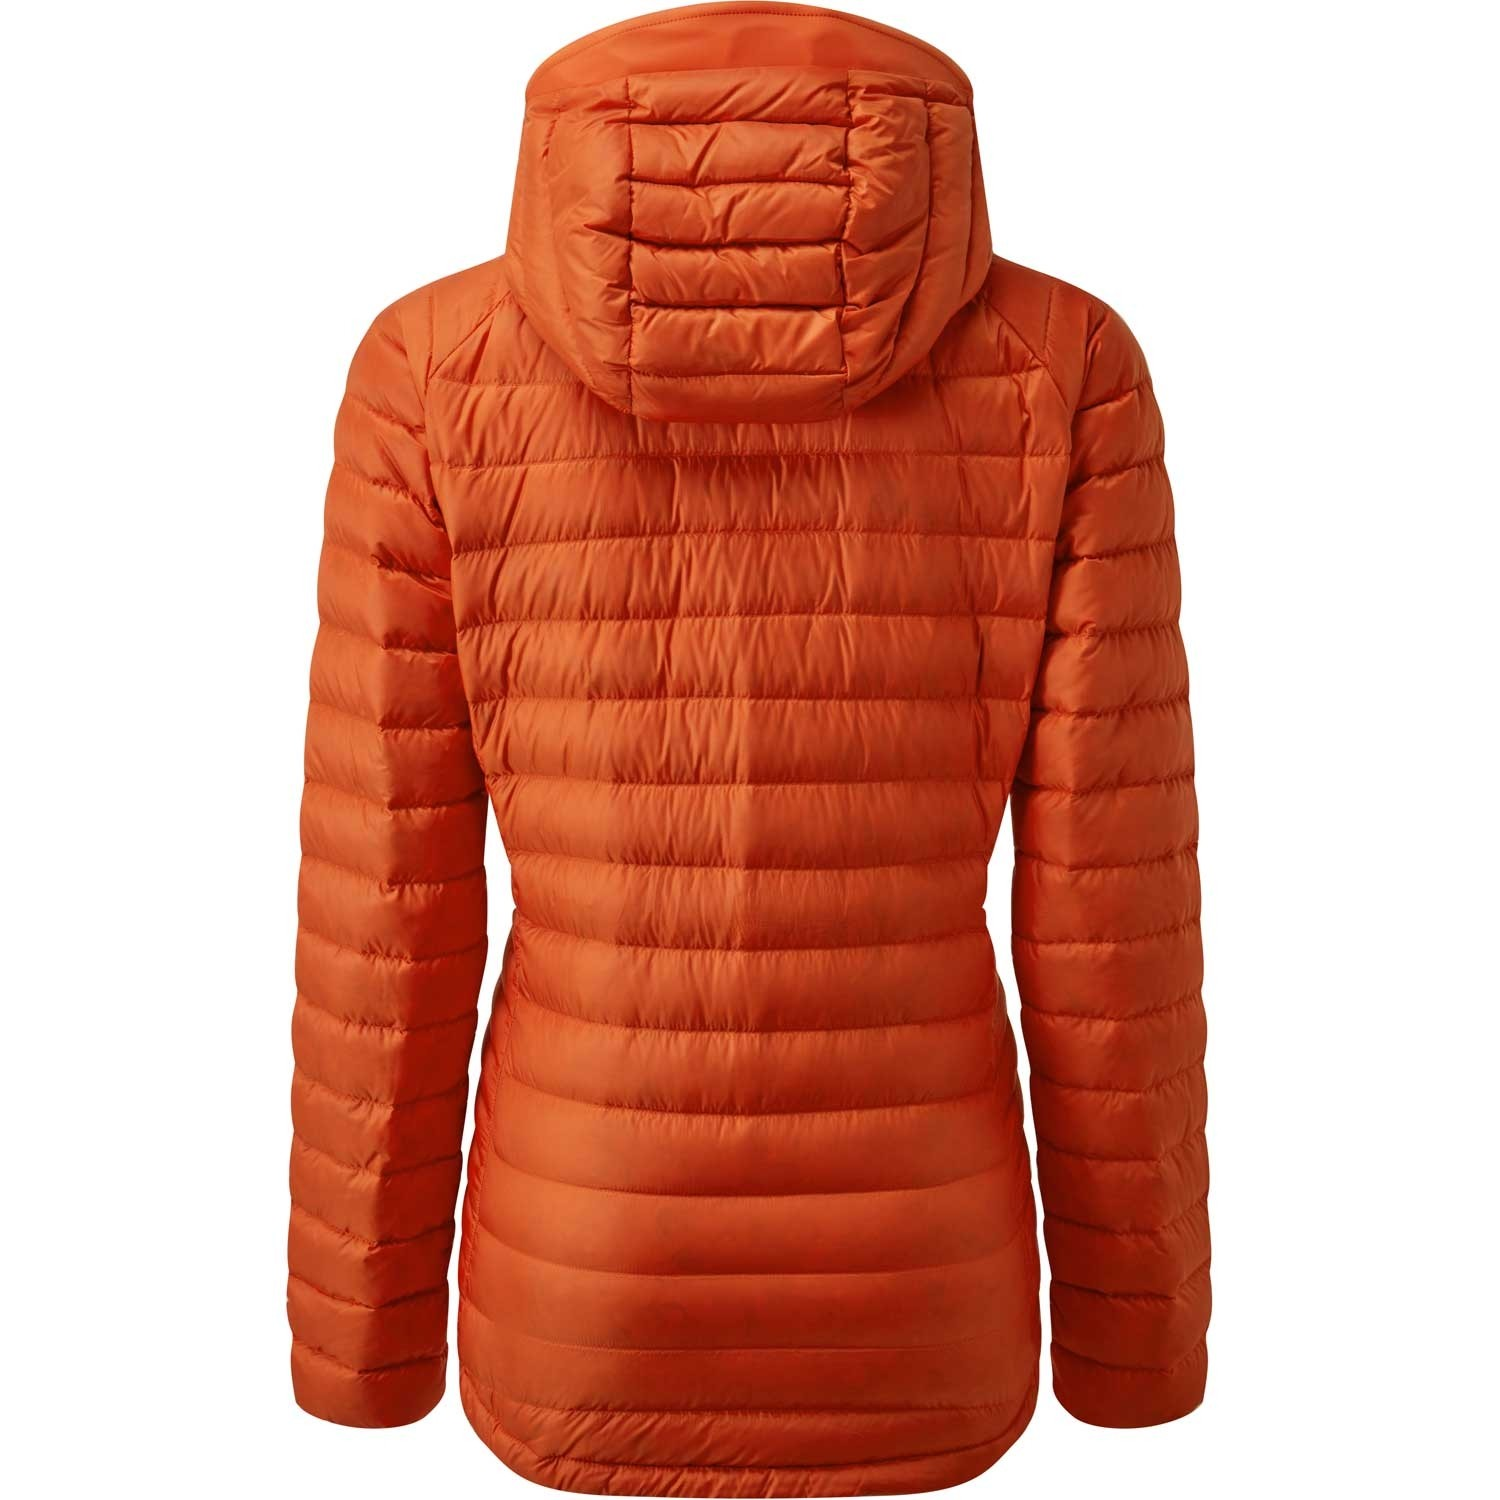 Rab Microlight Alpine Down Jacket - Women's - Firecracker